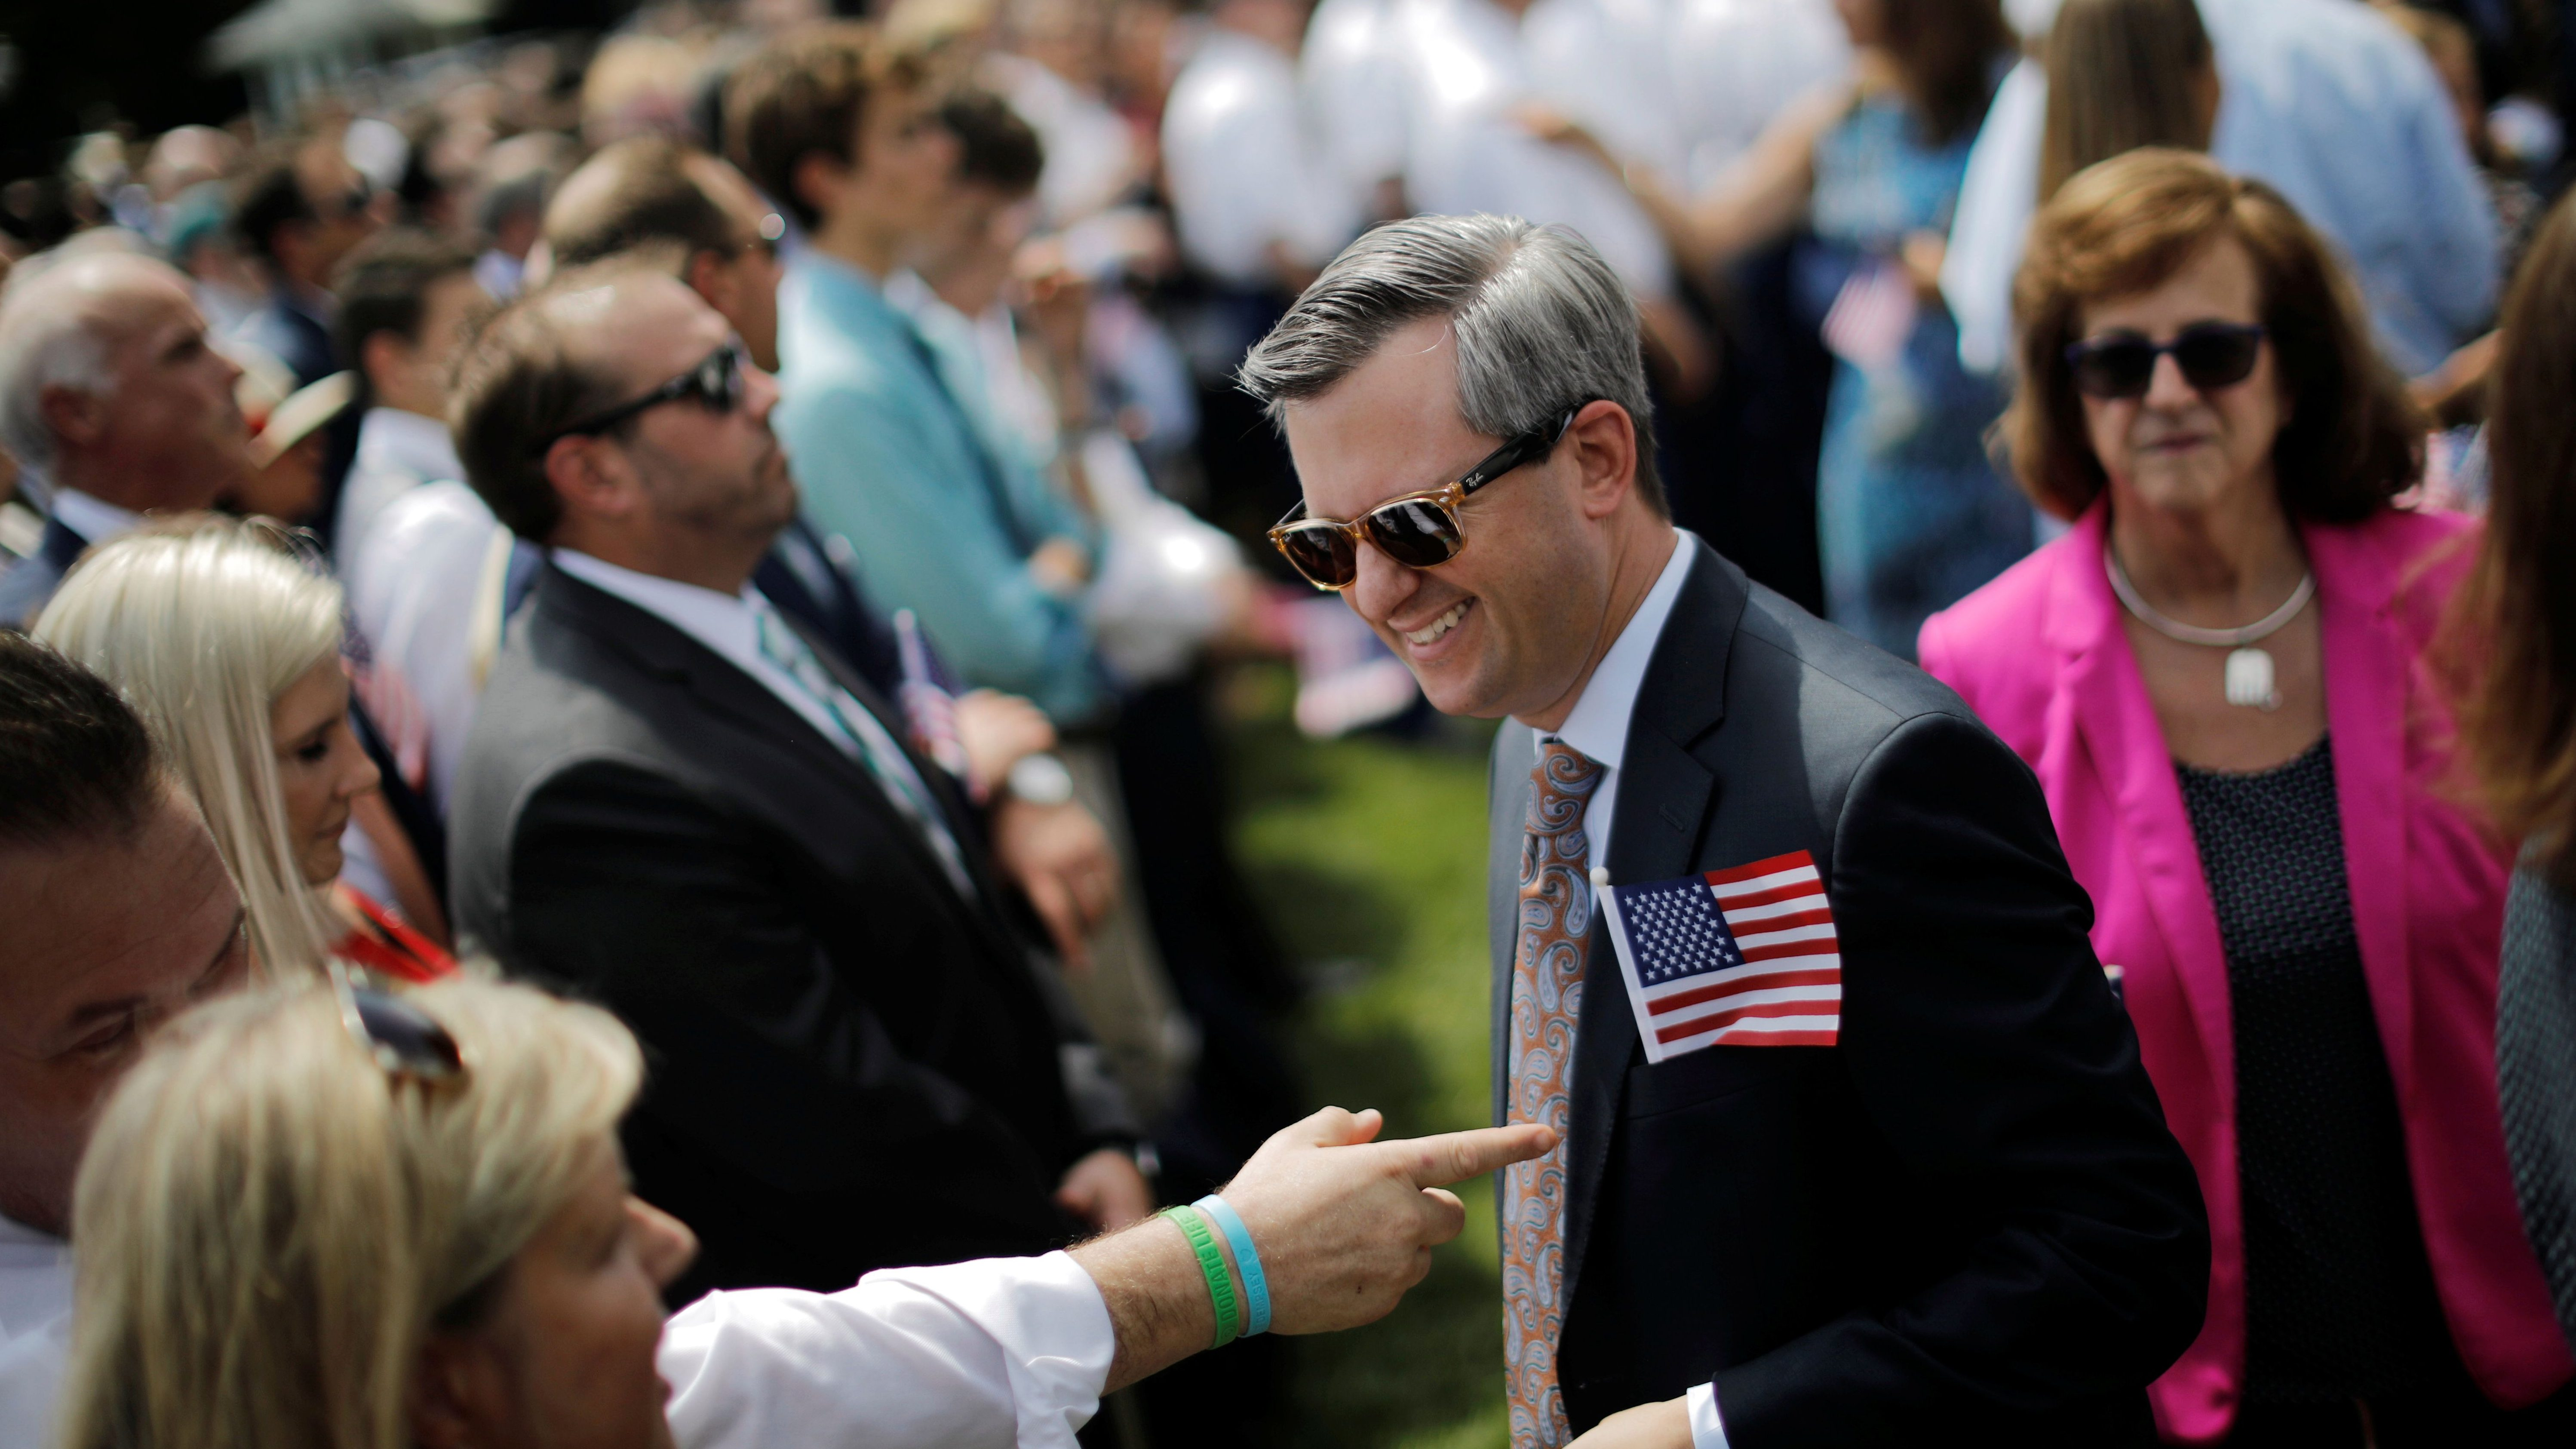 "Guest arrive for a ""celebration of America"" event on the South Lawn of the White House in Washington, U.S., June 5, 2018. The event was arranged after Trump canceled the planned visit of the Super Bowl champion Philadelphia Eagles to the White House. REUTERS/Carlos Barria - RC12BA905F80"